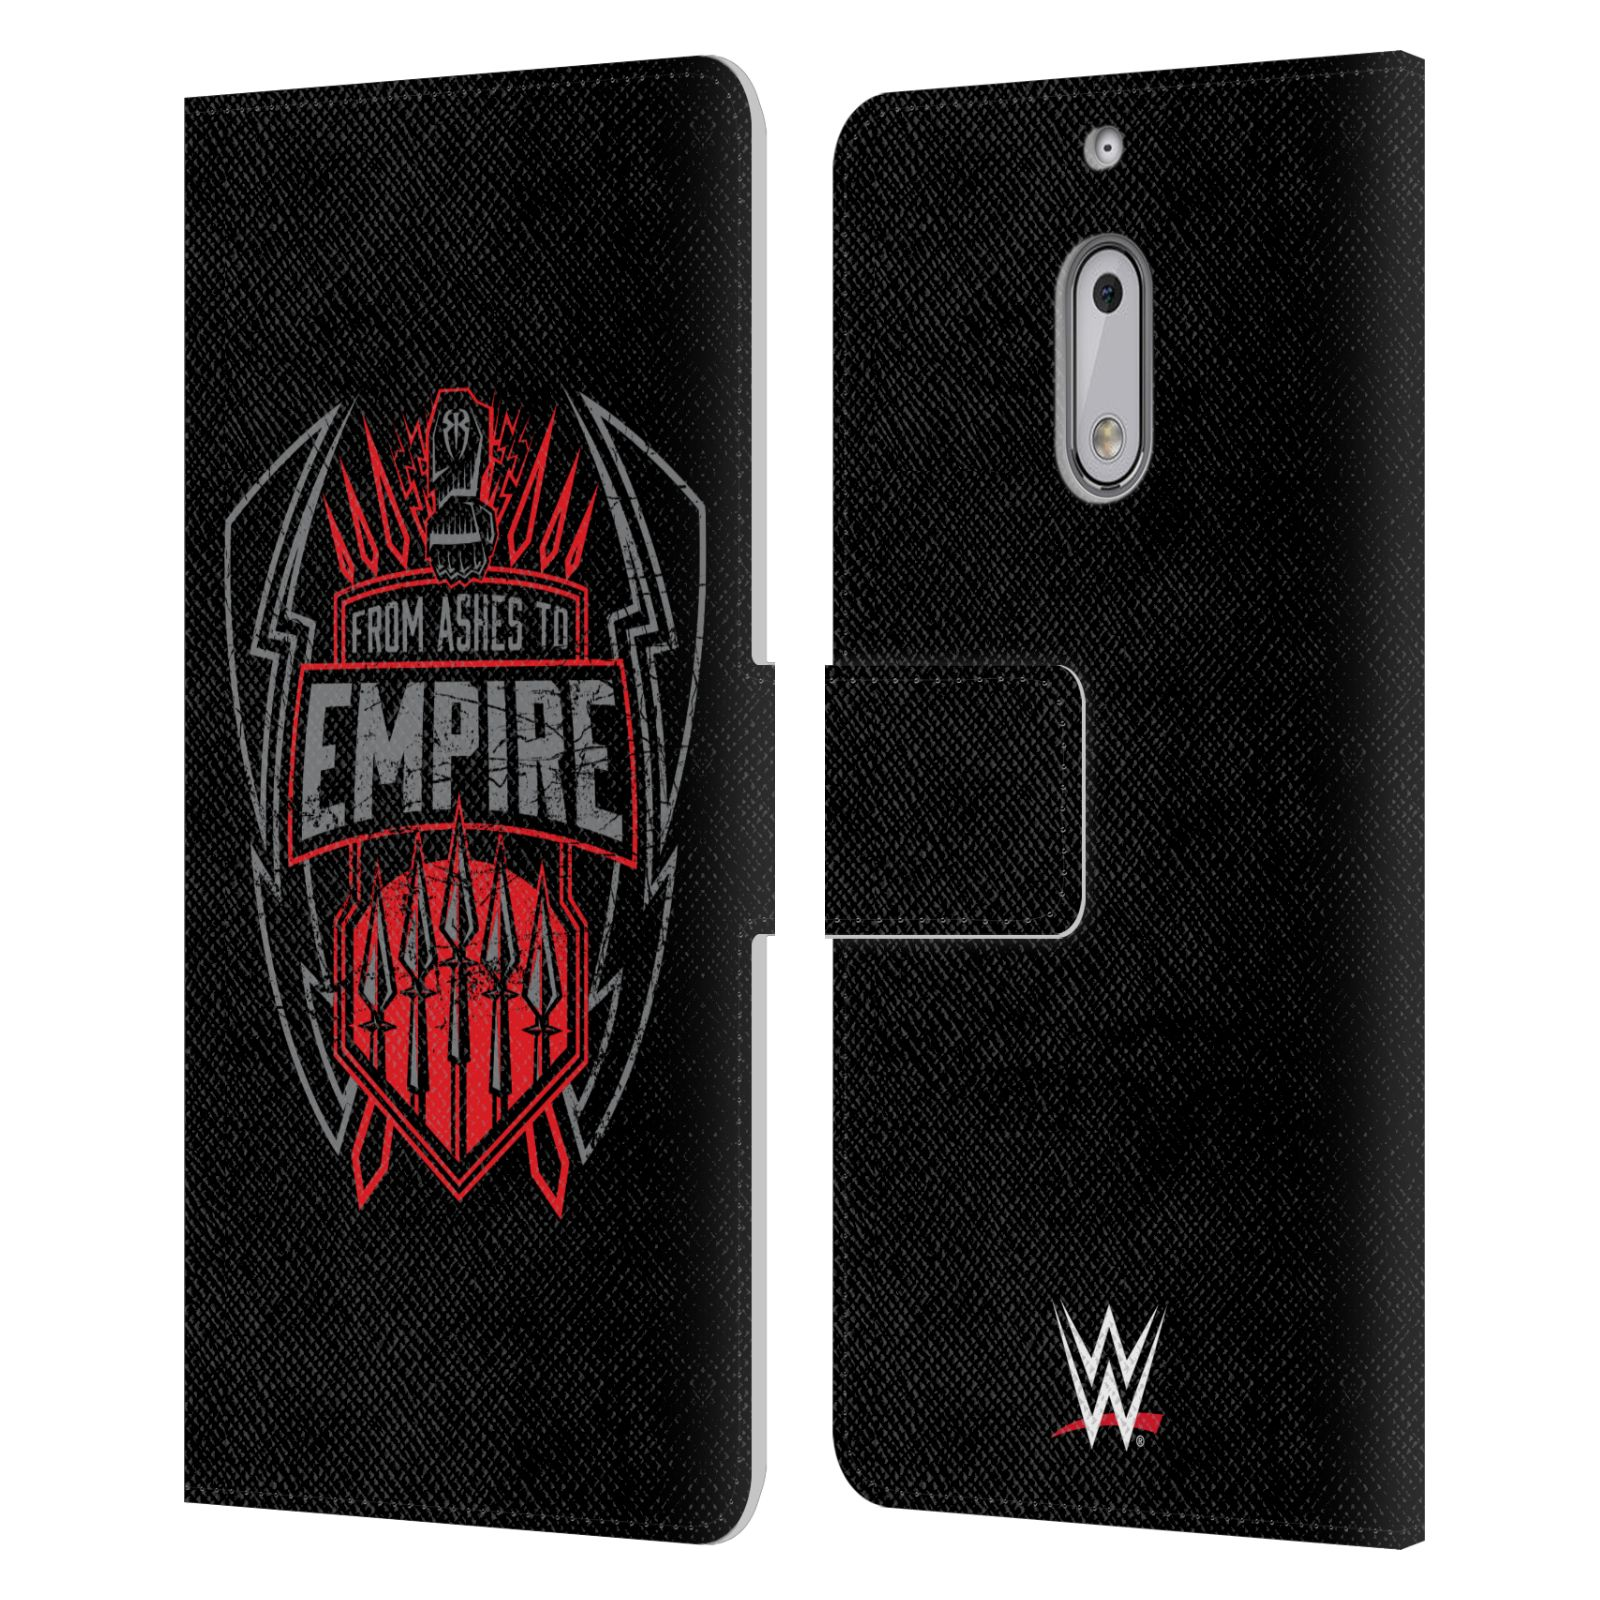 OFFICIAL-WWE-2017-ROMAN-REIGNS-LEATHER-BOOK-CASE-FOR-MICROSOFT-NOKIA-PHONES